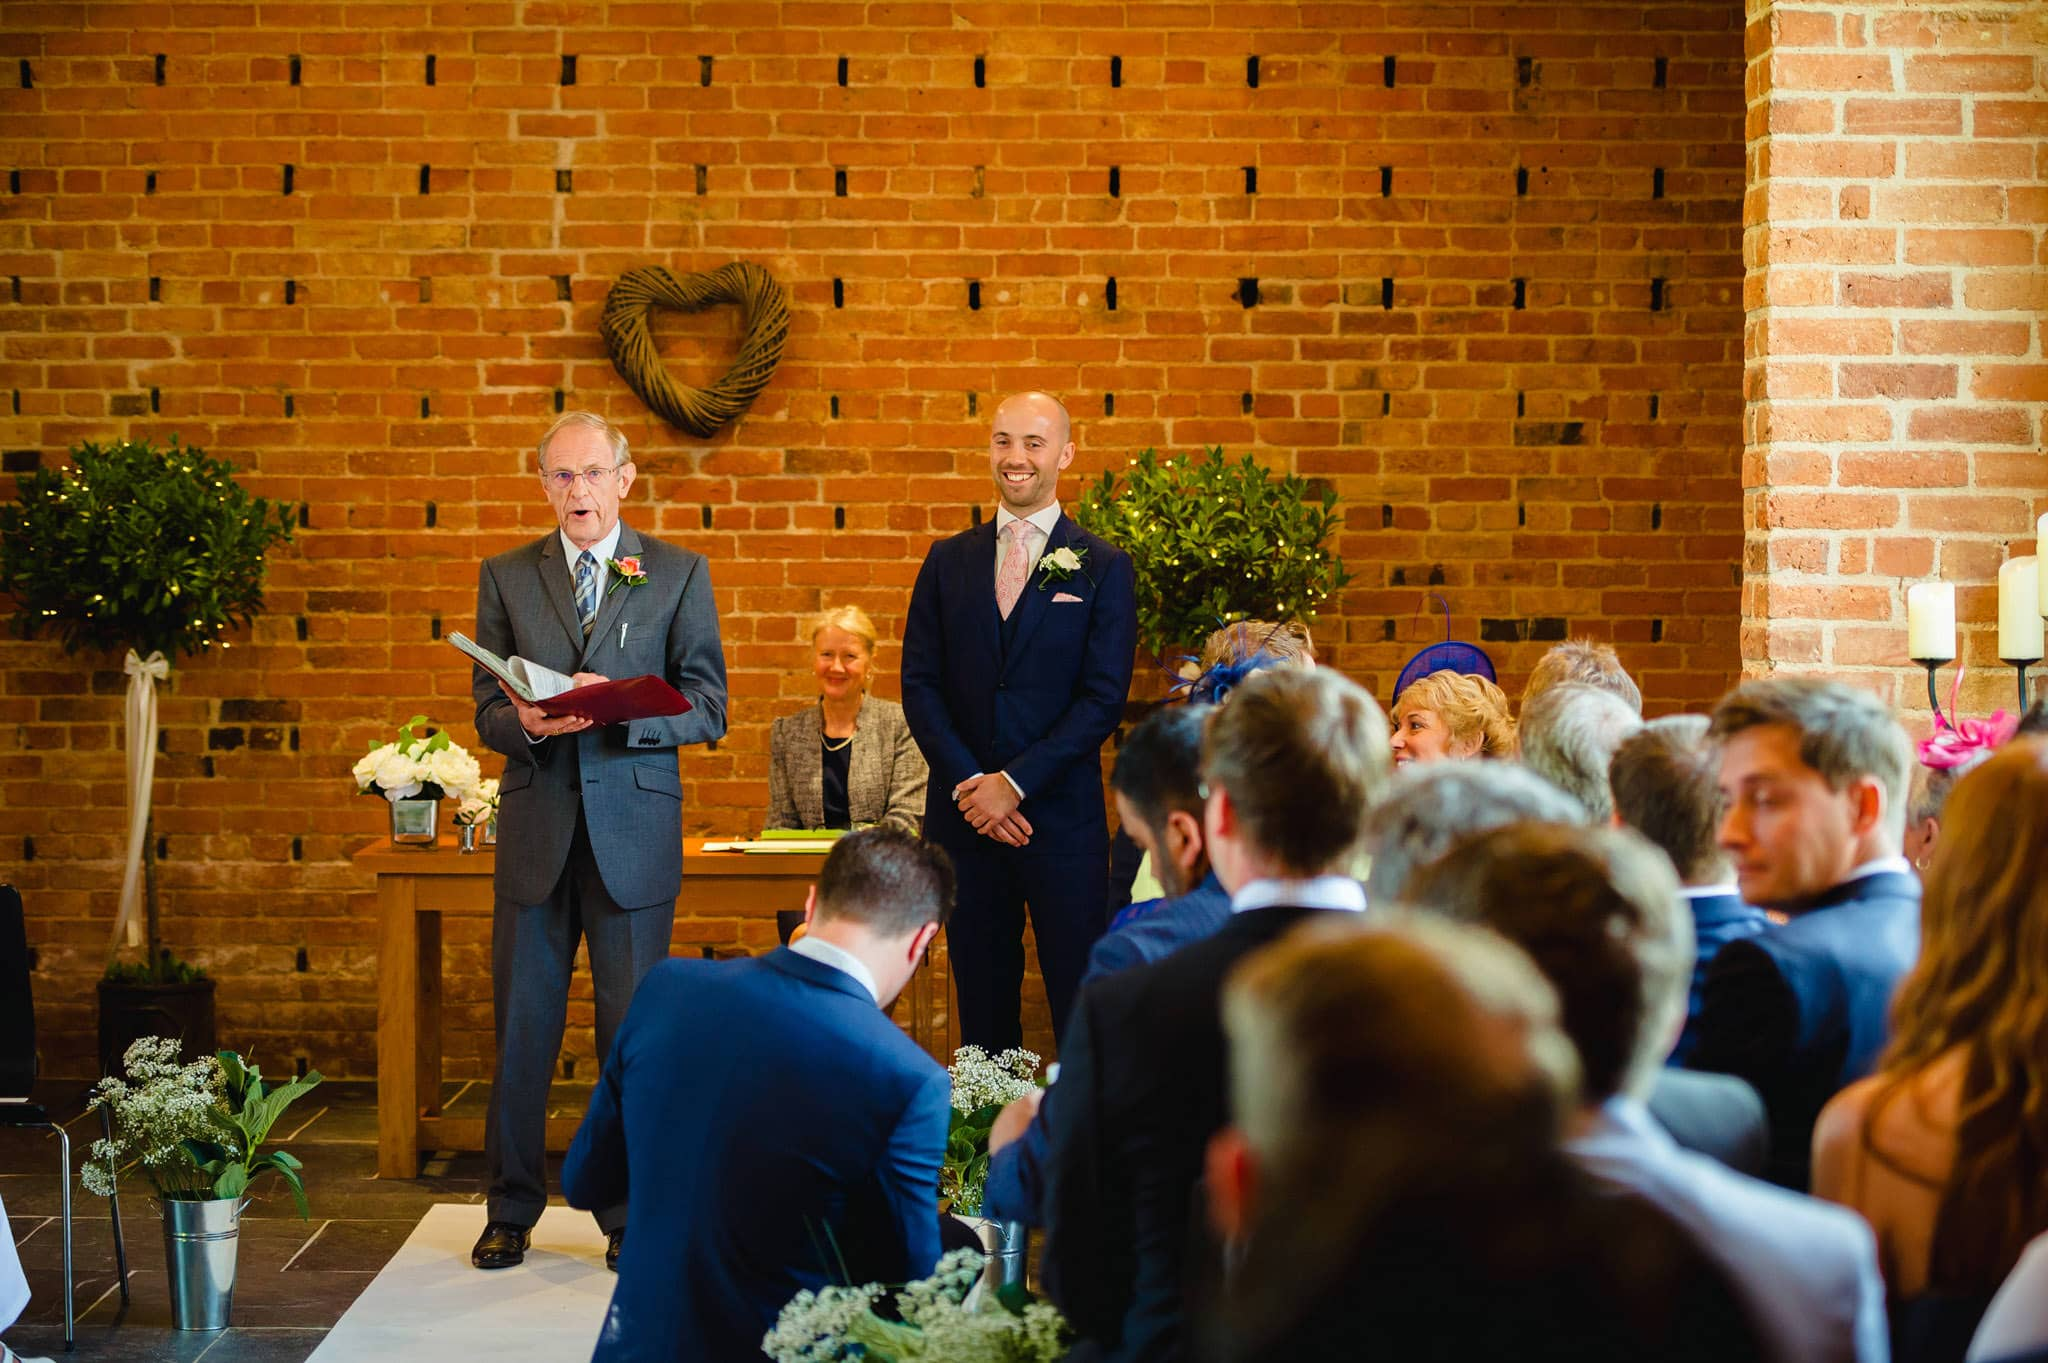 Wedding at Redhouse Barn in Stoke Prior, Worcestershire 55